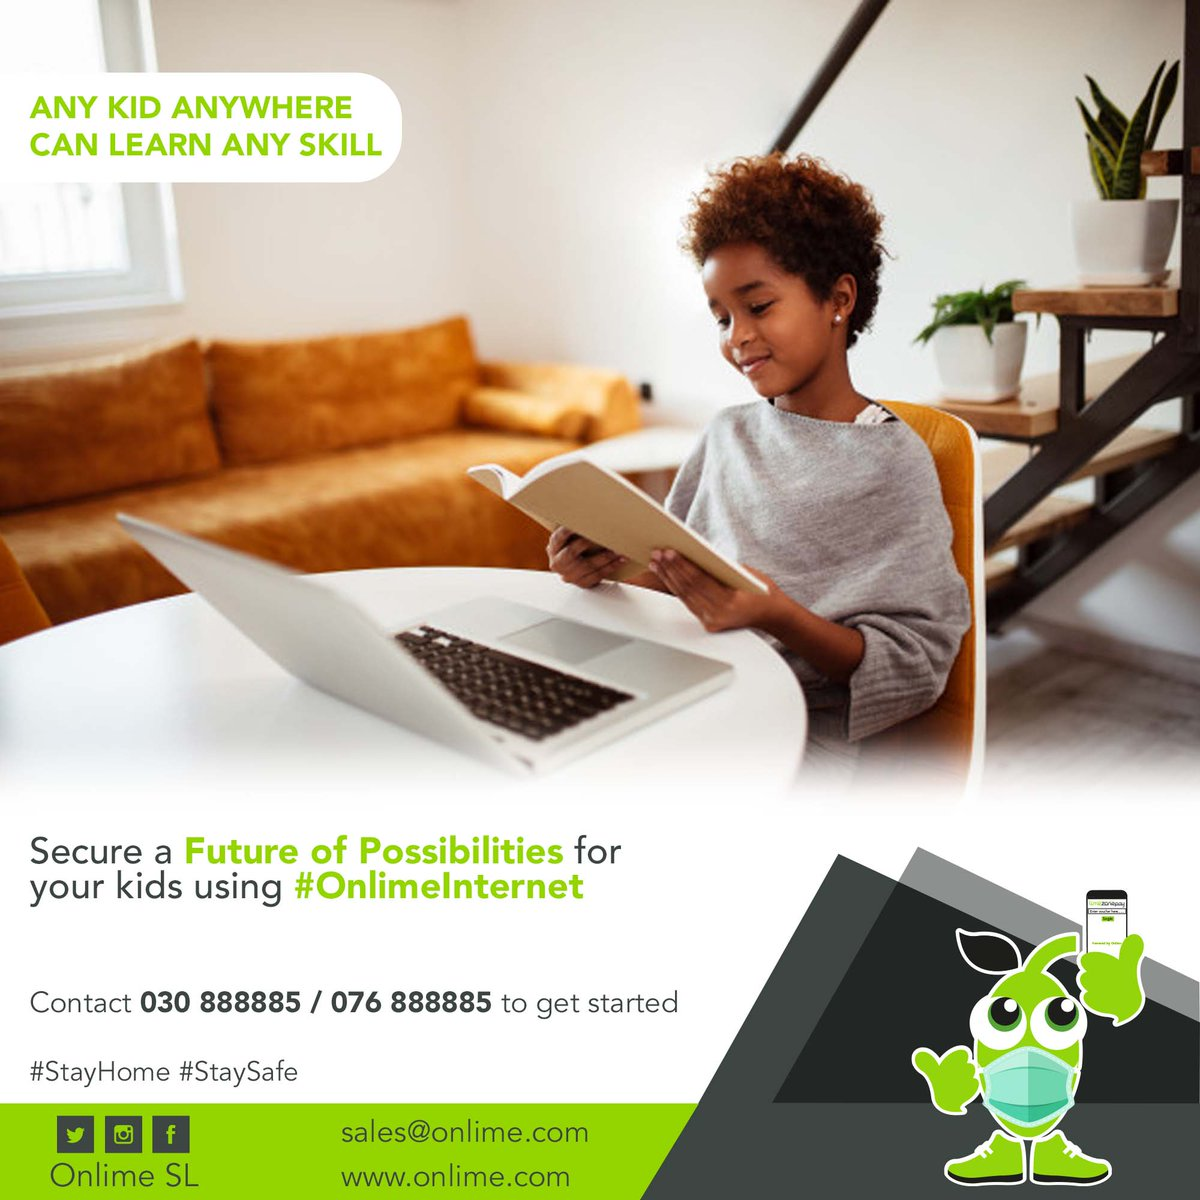 With the #Internet, kids today can learn things quicker than we do. Secure a Future of Possibilities for your kids using #OnlimeInternet Call 076888885 / 030888885 to know more. #SierraLeone #Freetown #SaloneTwitter https://t.co/hCww6HGpnc